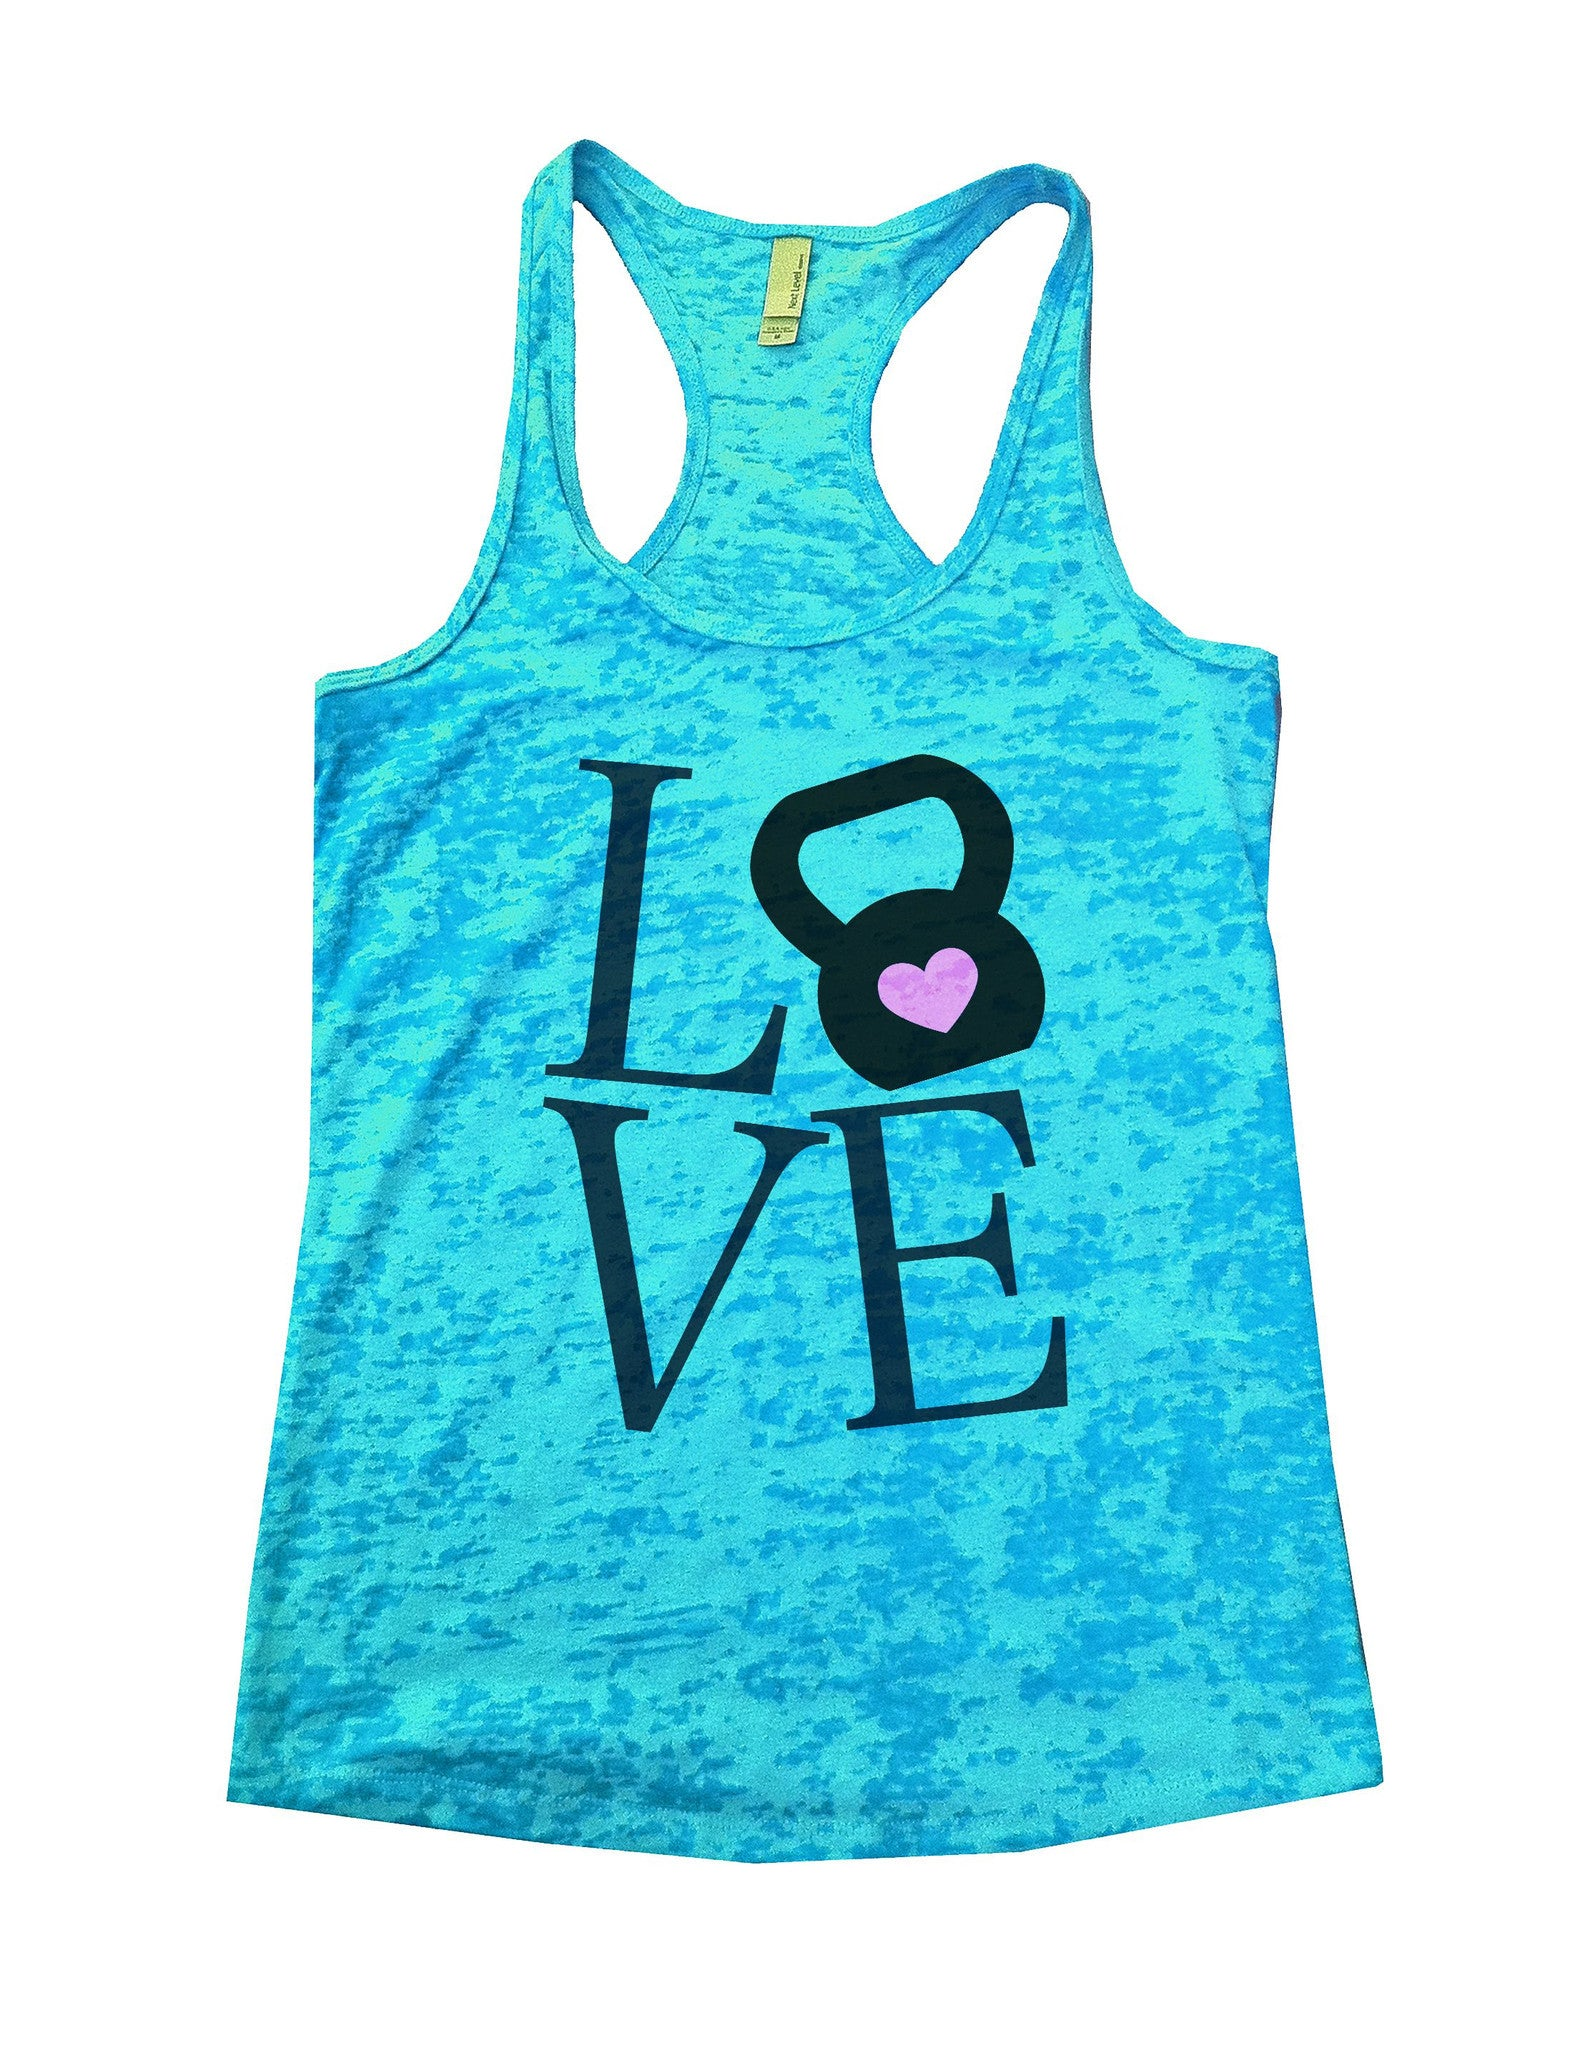 Love Burnout Tank Top By BurnoutTankTops.com - 727 - Funny Shirts Tank Tops Burnouts and Triblends  - 4